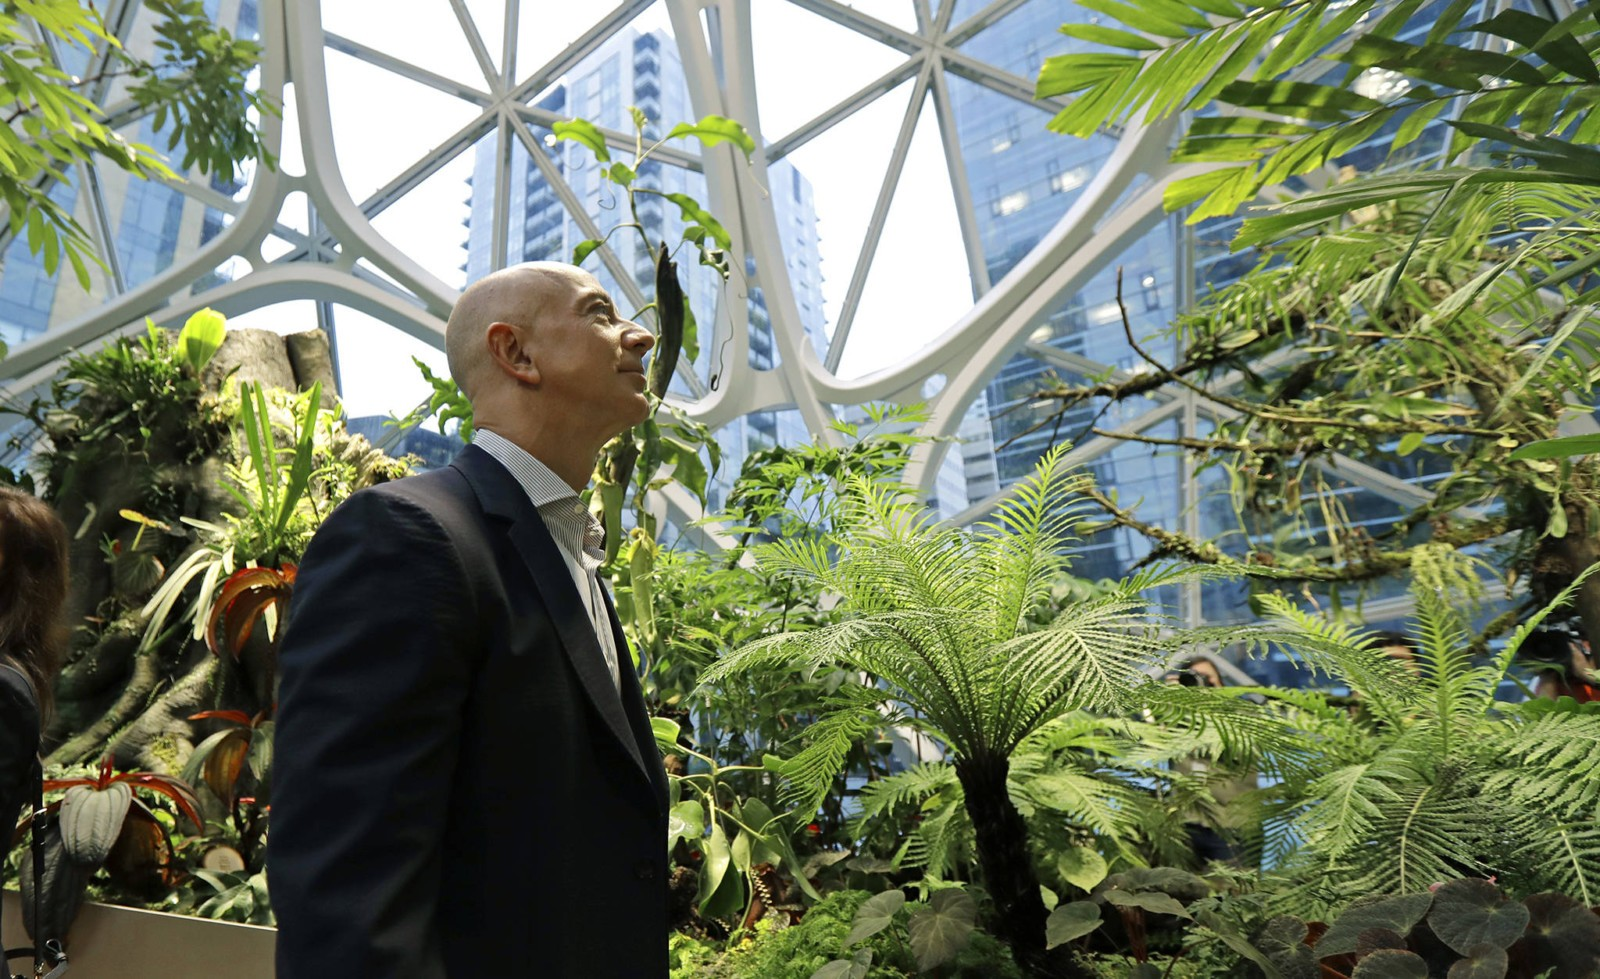 Seattle y la 'bomba de prosperidad' de Amazon